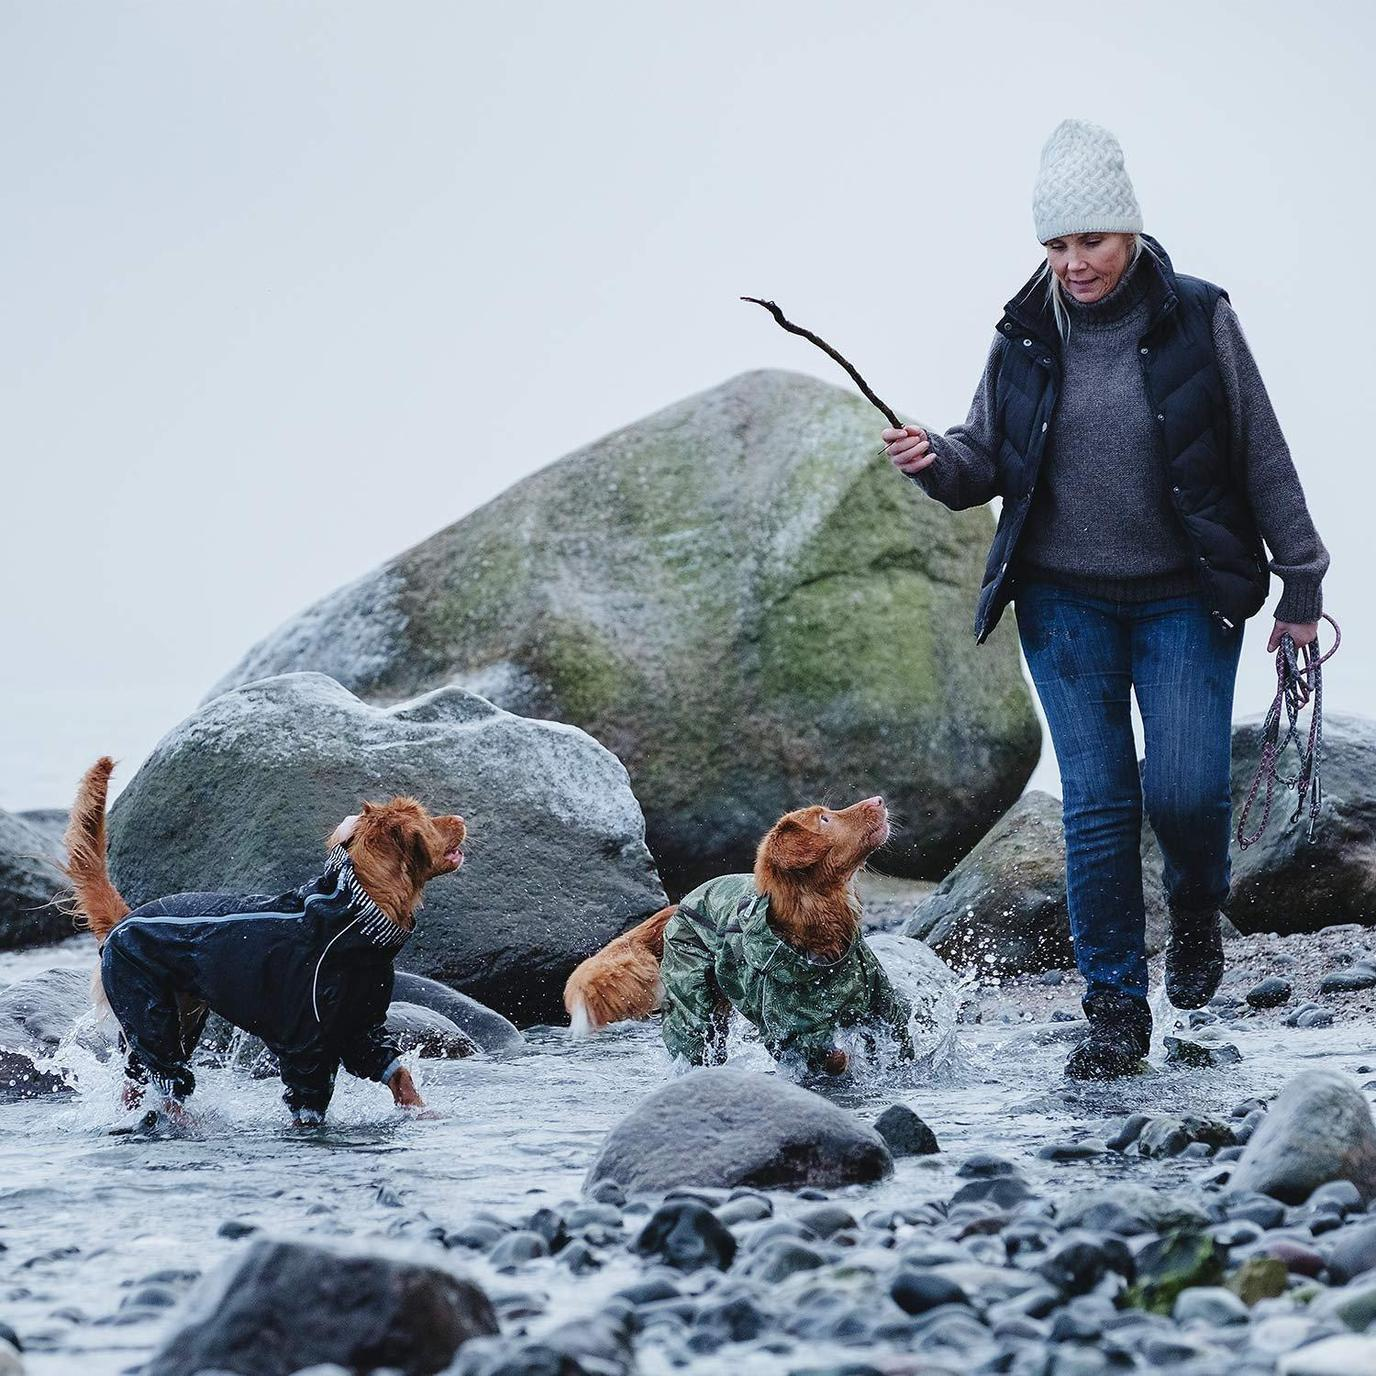 A Woman Plays in the Water With Two Pups Wearing Rain Gear for Dogs.